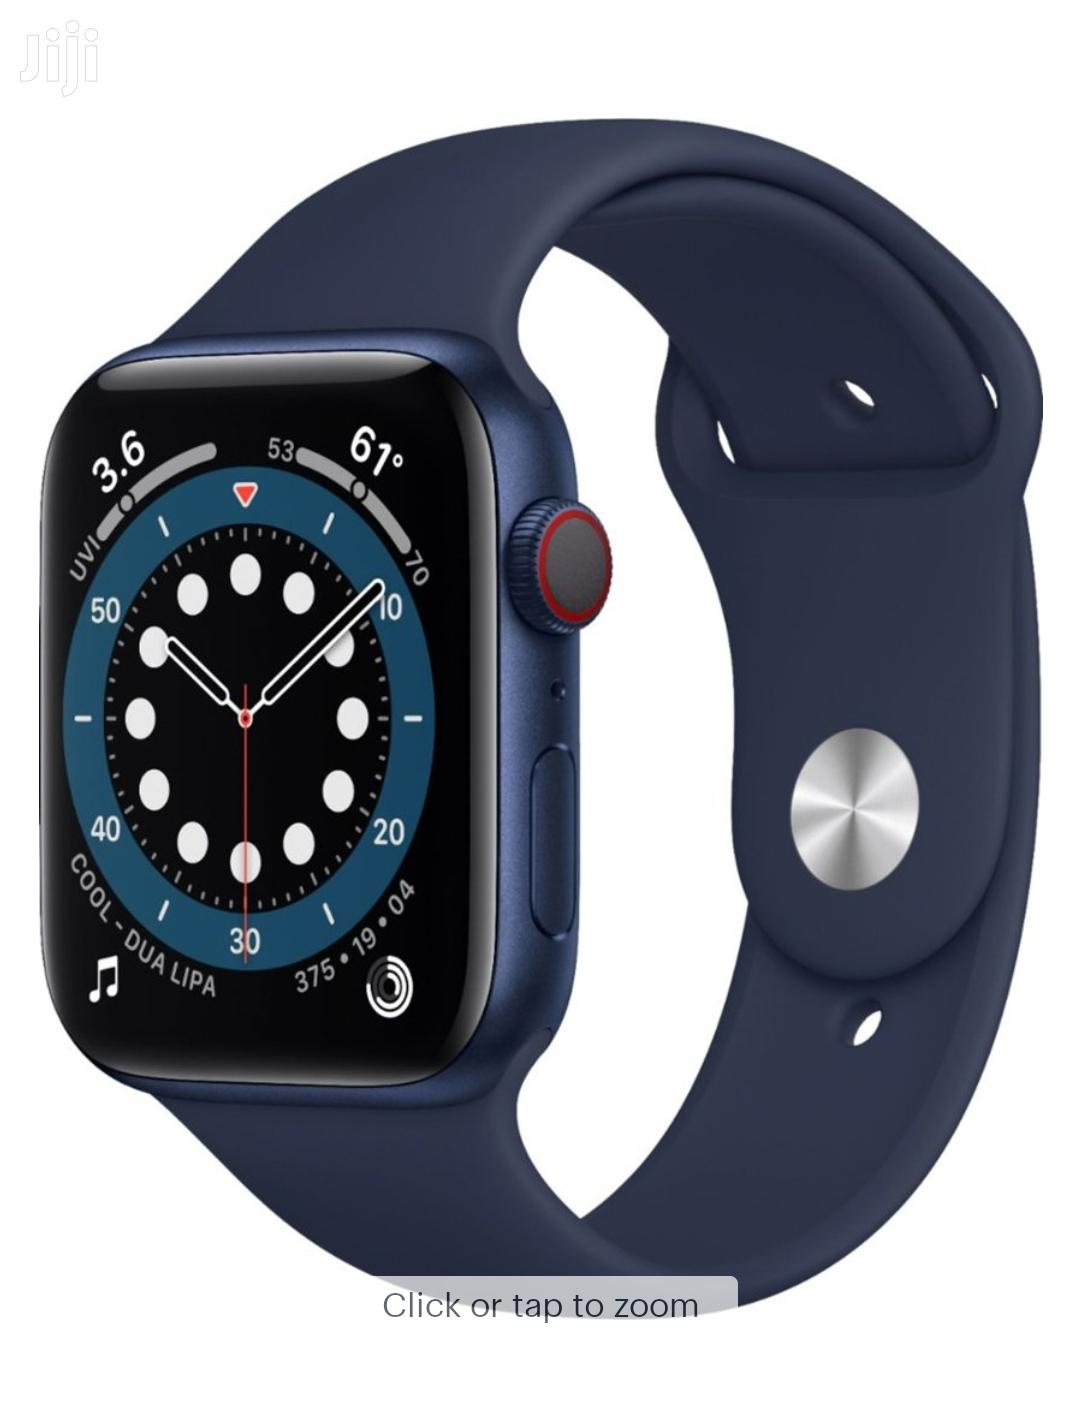 Apple Watch Series 6 (GPS + Cellular) 44mm | Smart Watches & Trackers for sale in North Labone, Greater Accra, Ghana